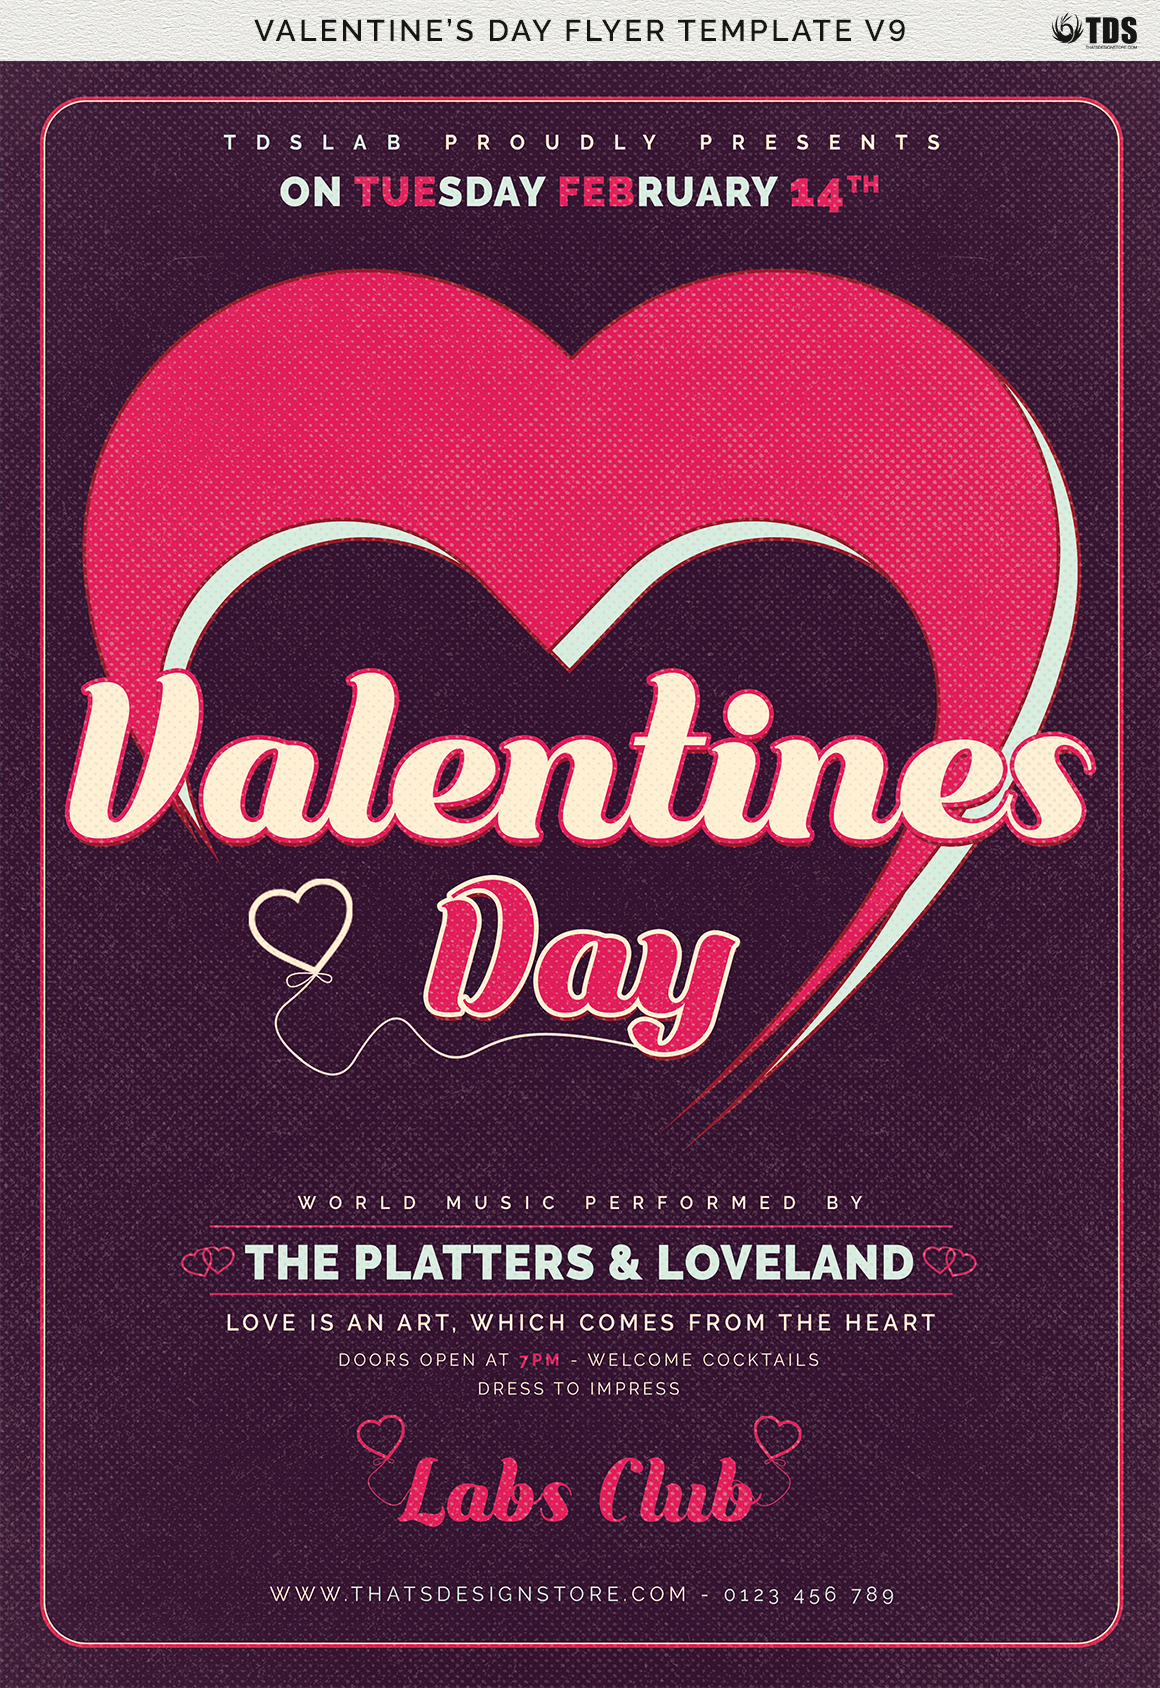 Valentines Day Flyer Template V9 example image 8